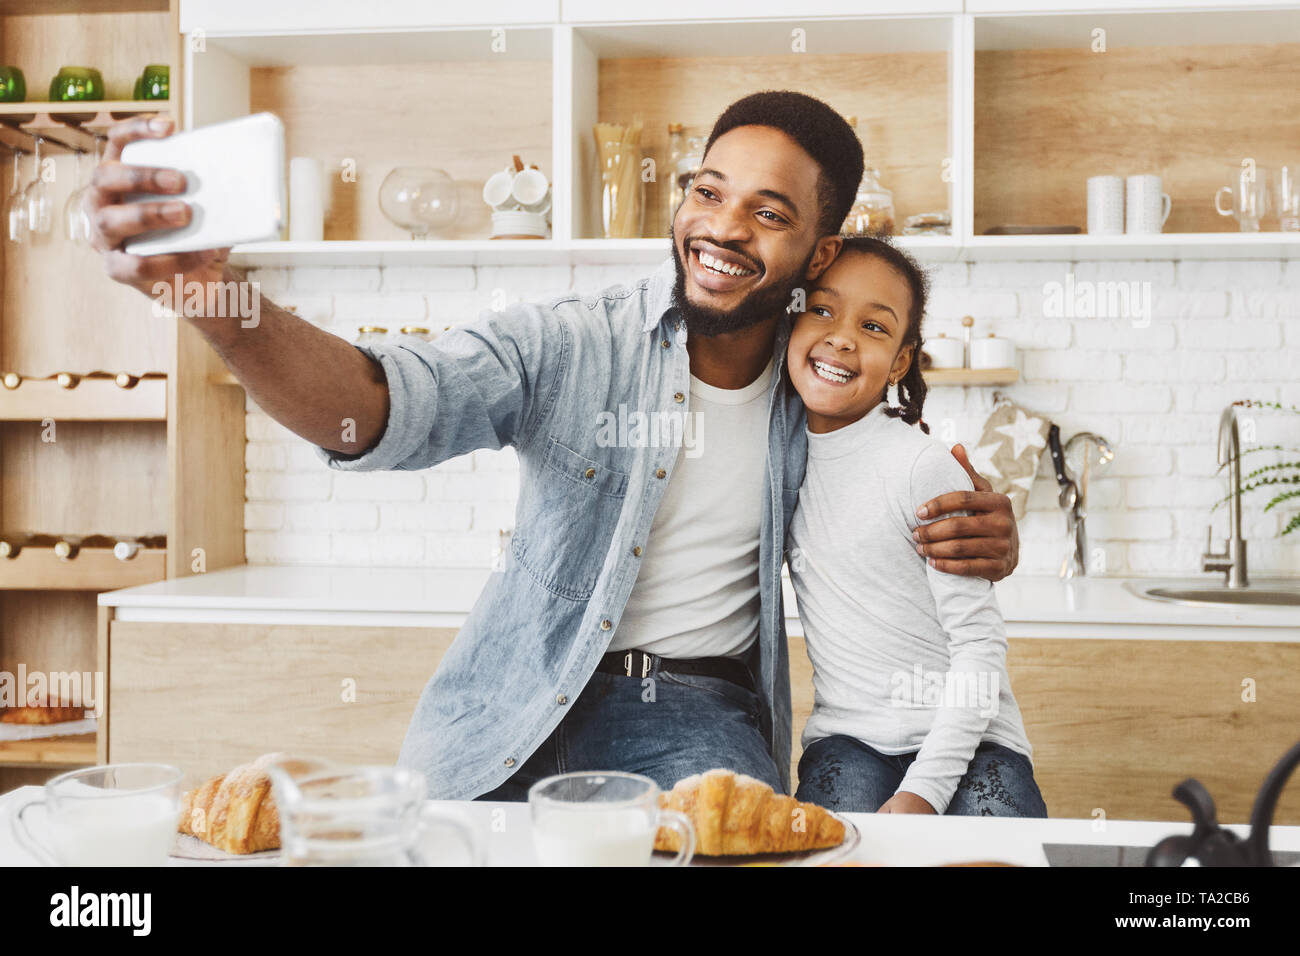 Happy father's day concept Stock Photo